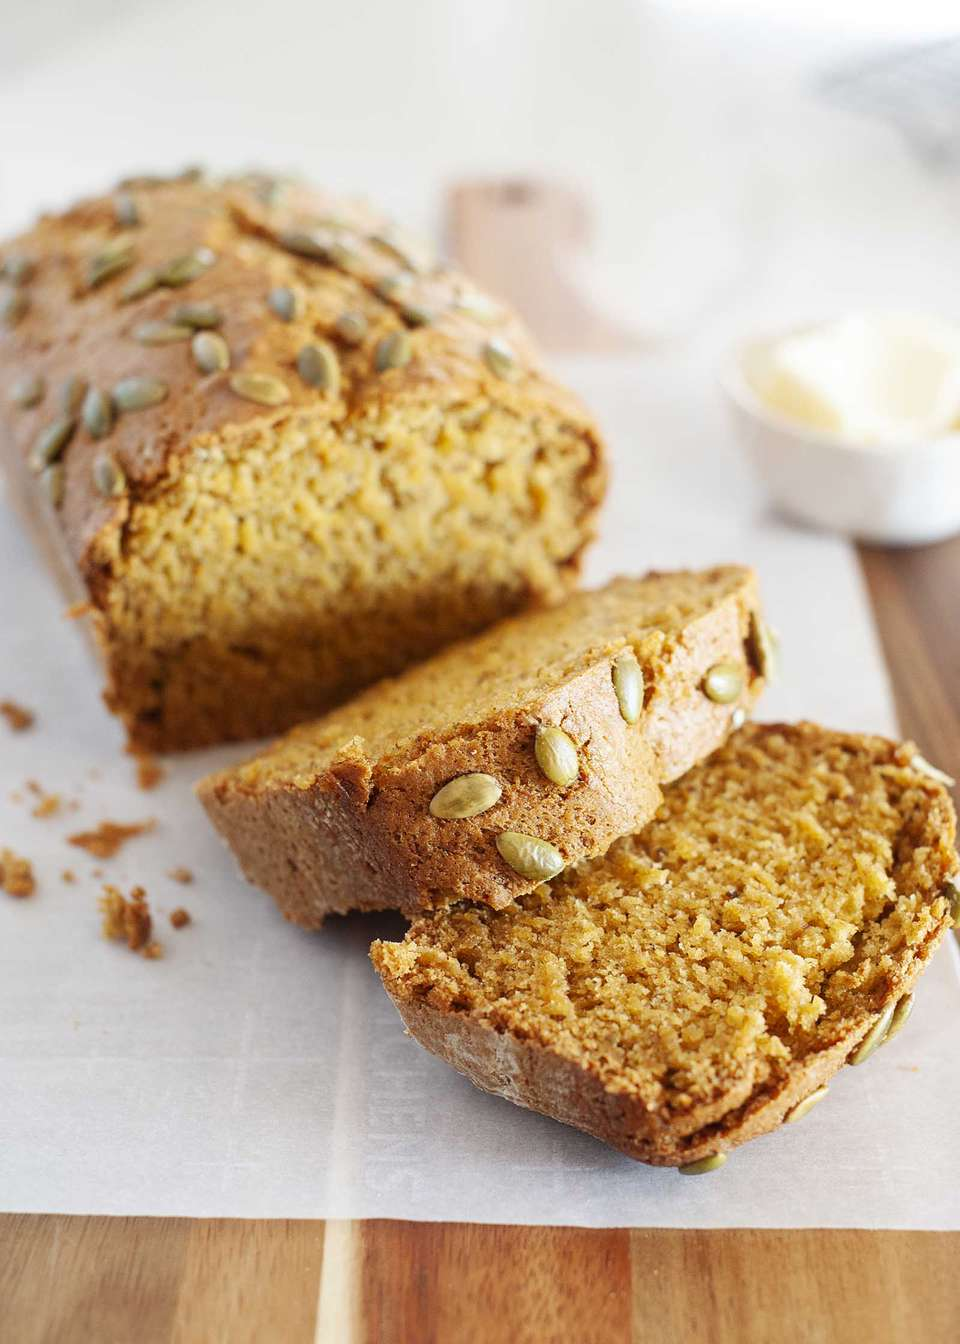 A loaf of the Best Vegan Pumpkin Bread cut into thick slices and set on a cutting board.